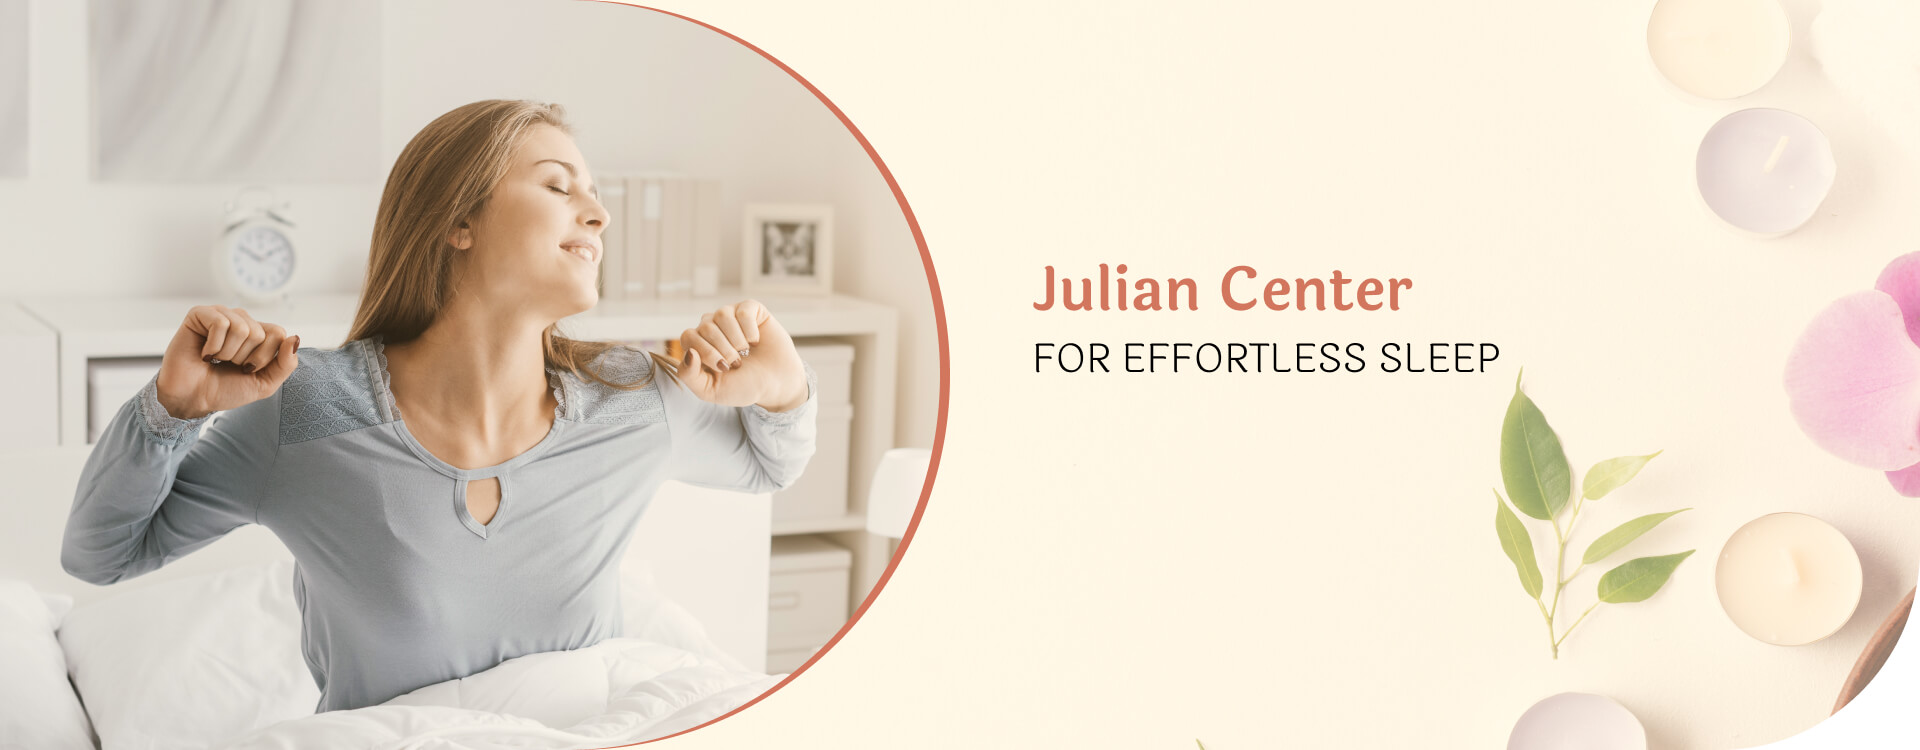 A woman just waking up, stretching - Julian Center for Effortless Sleep